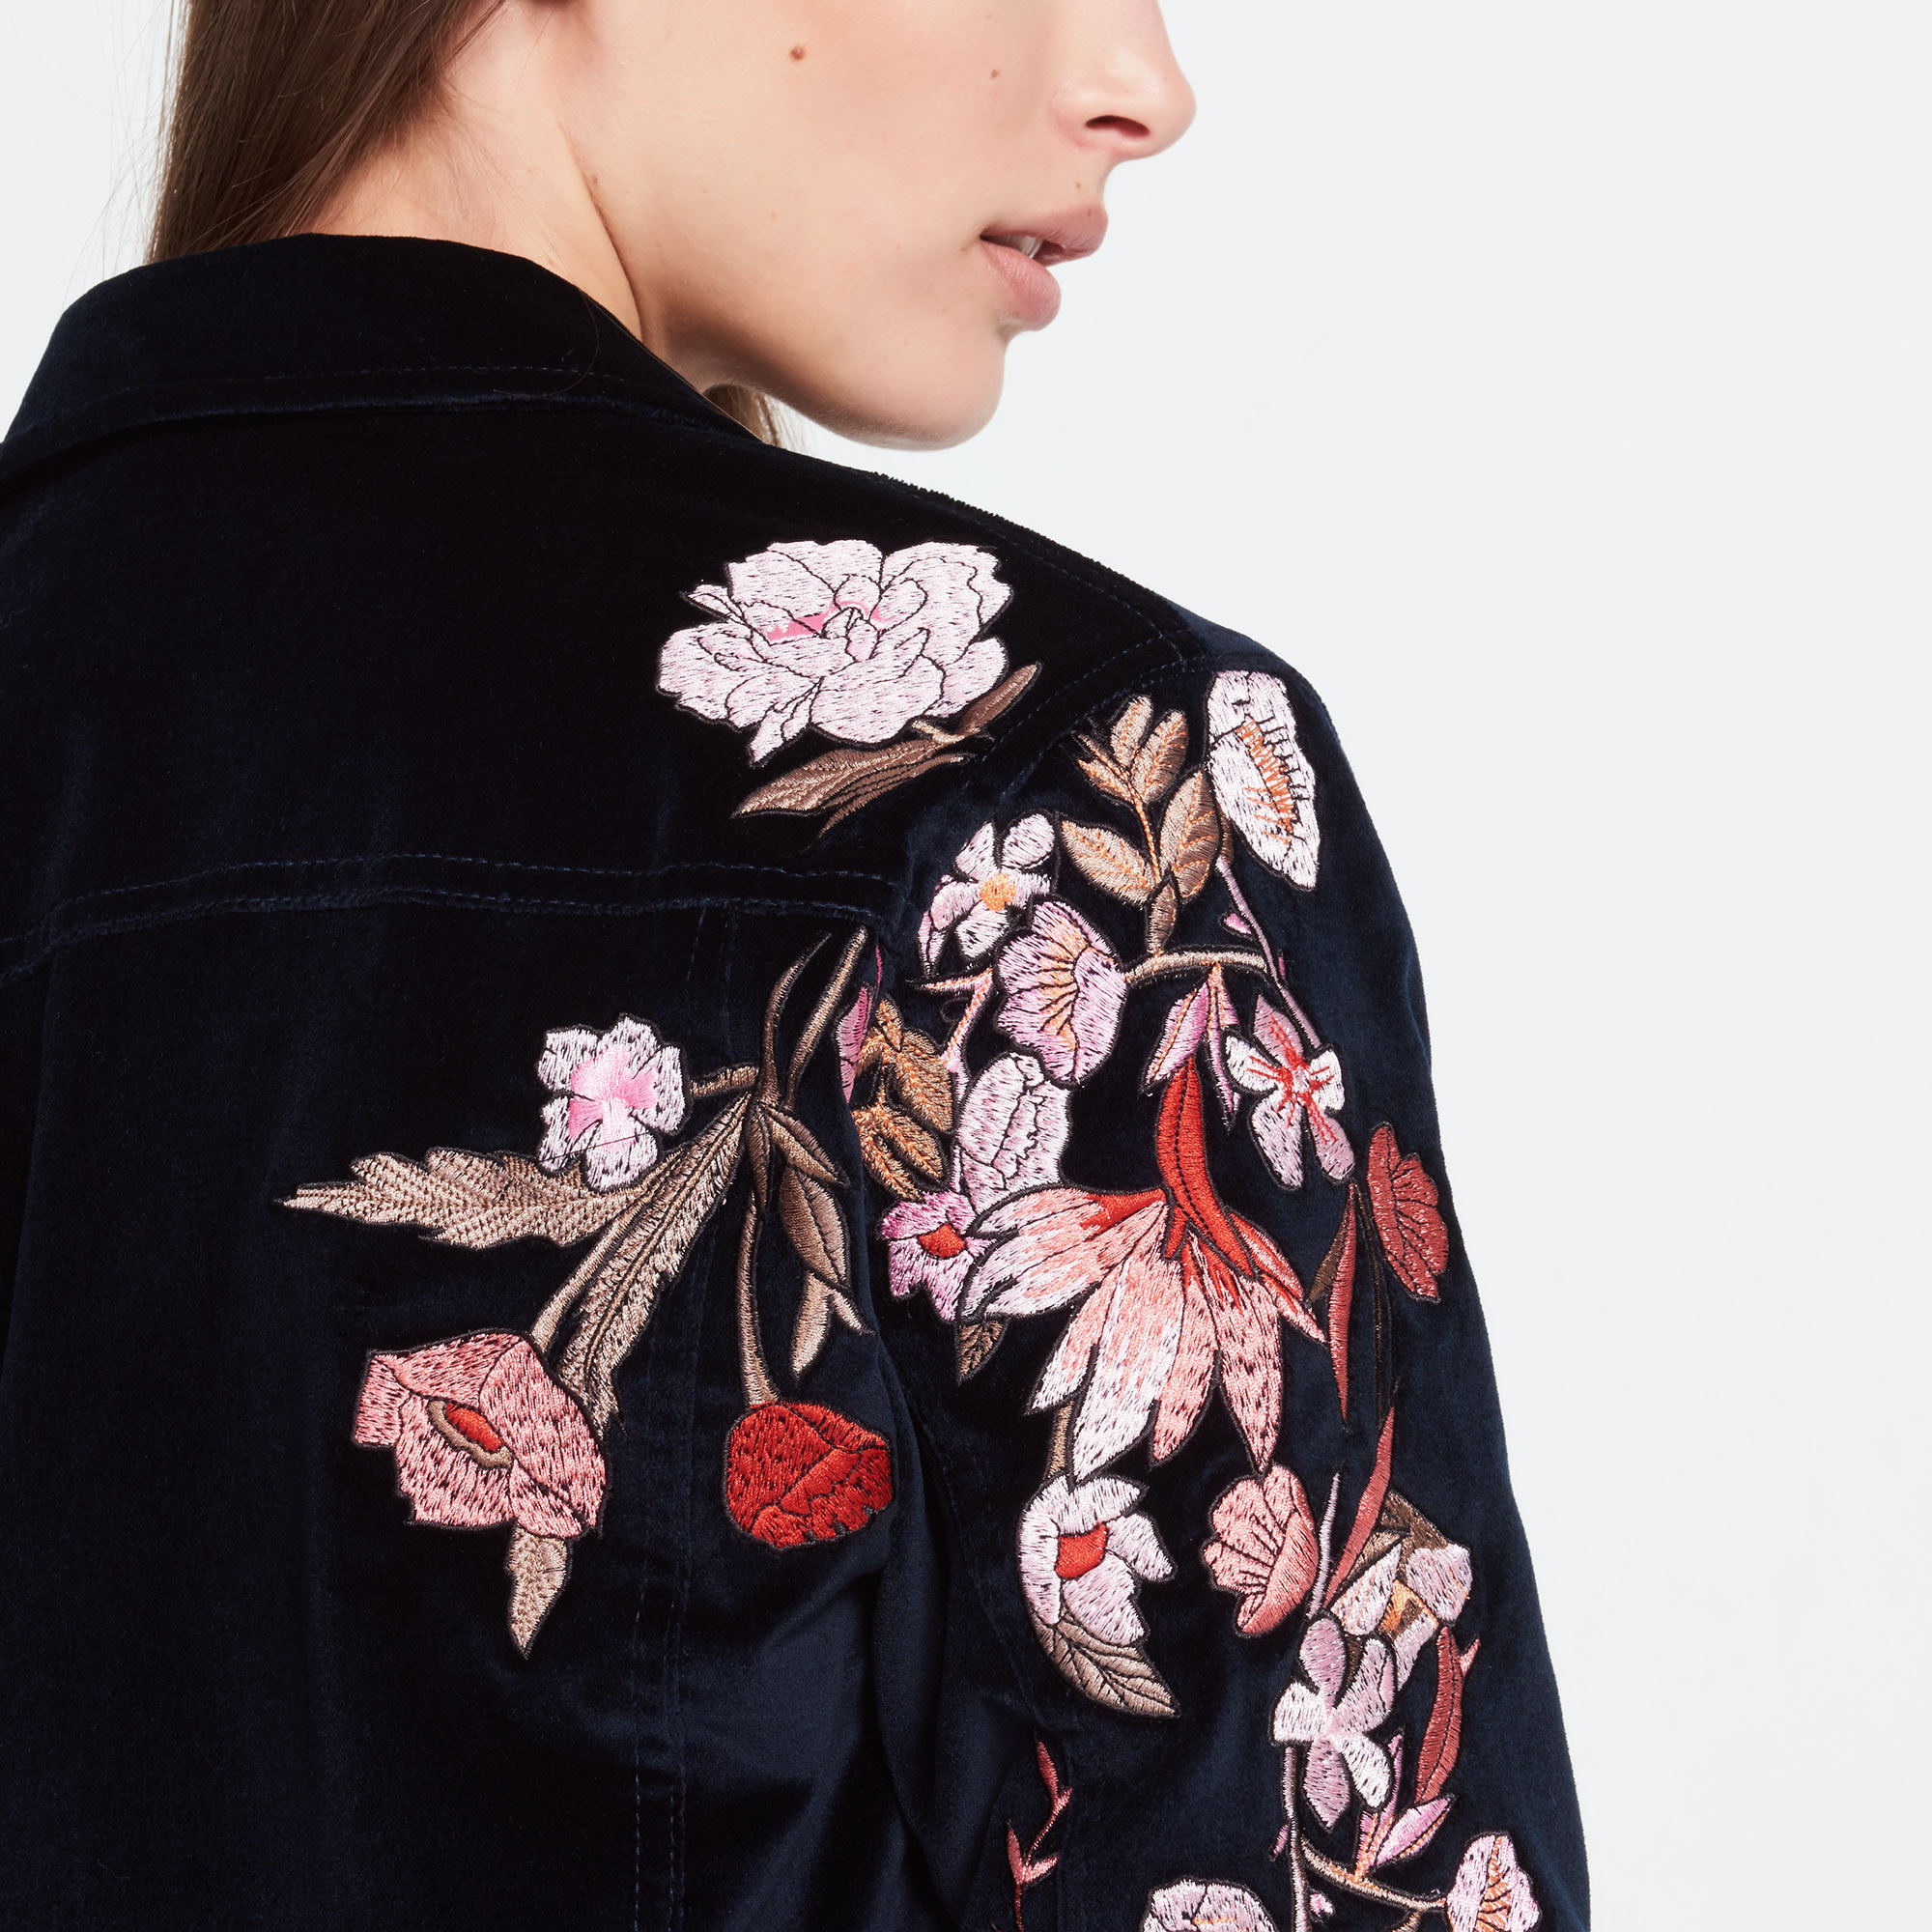 日本未入荷【sandro】Velvet jacket with floral emb ジャケット